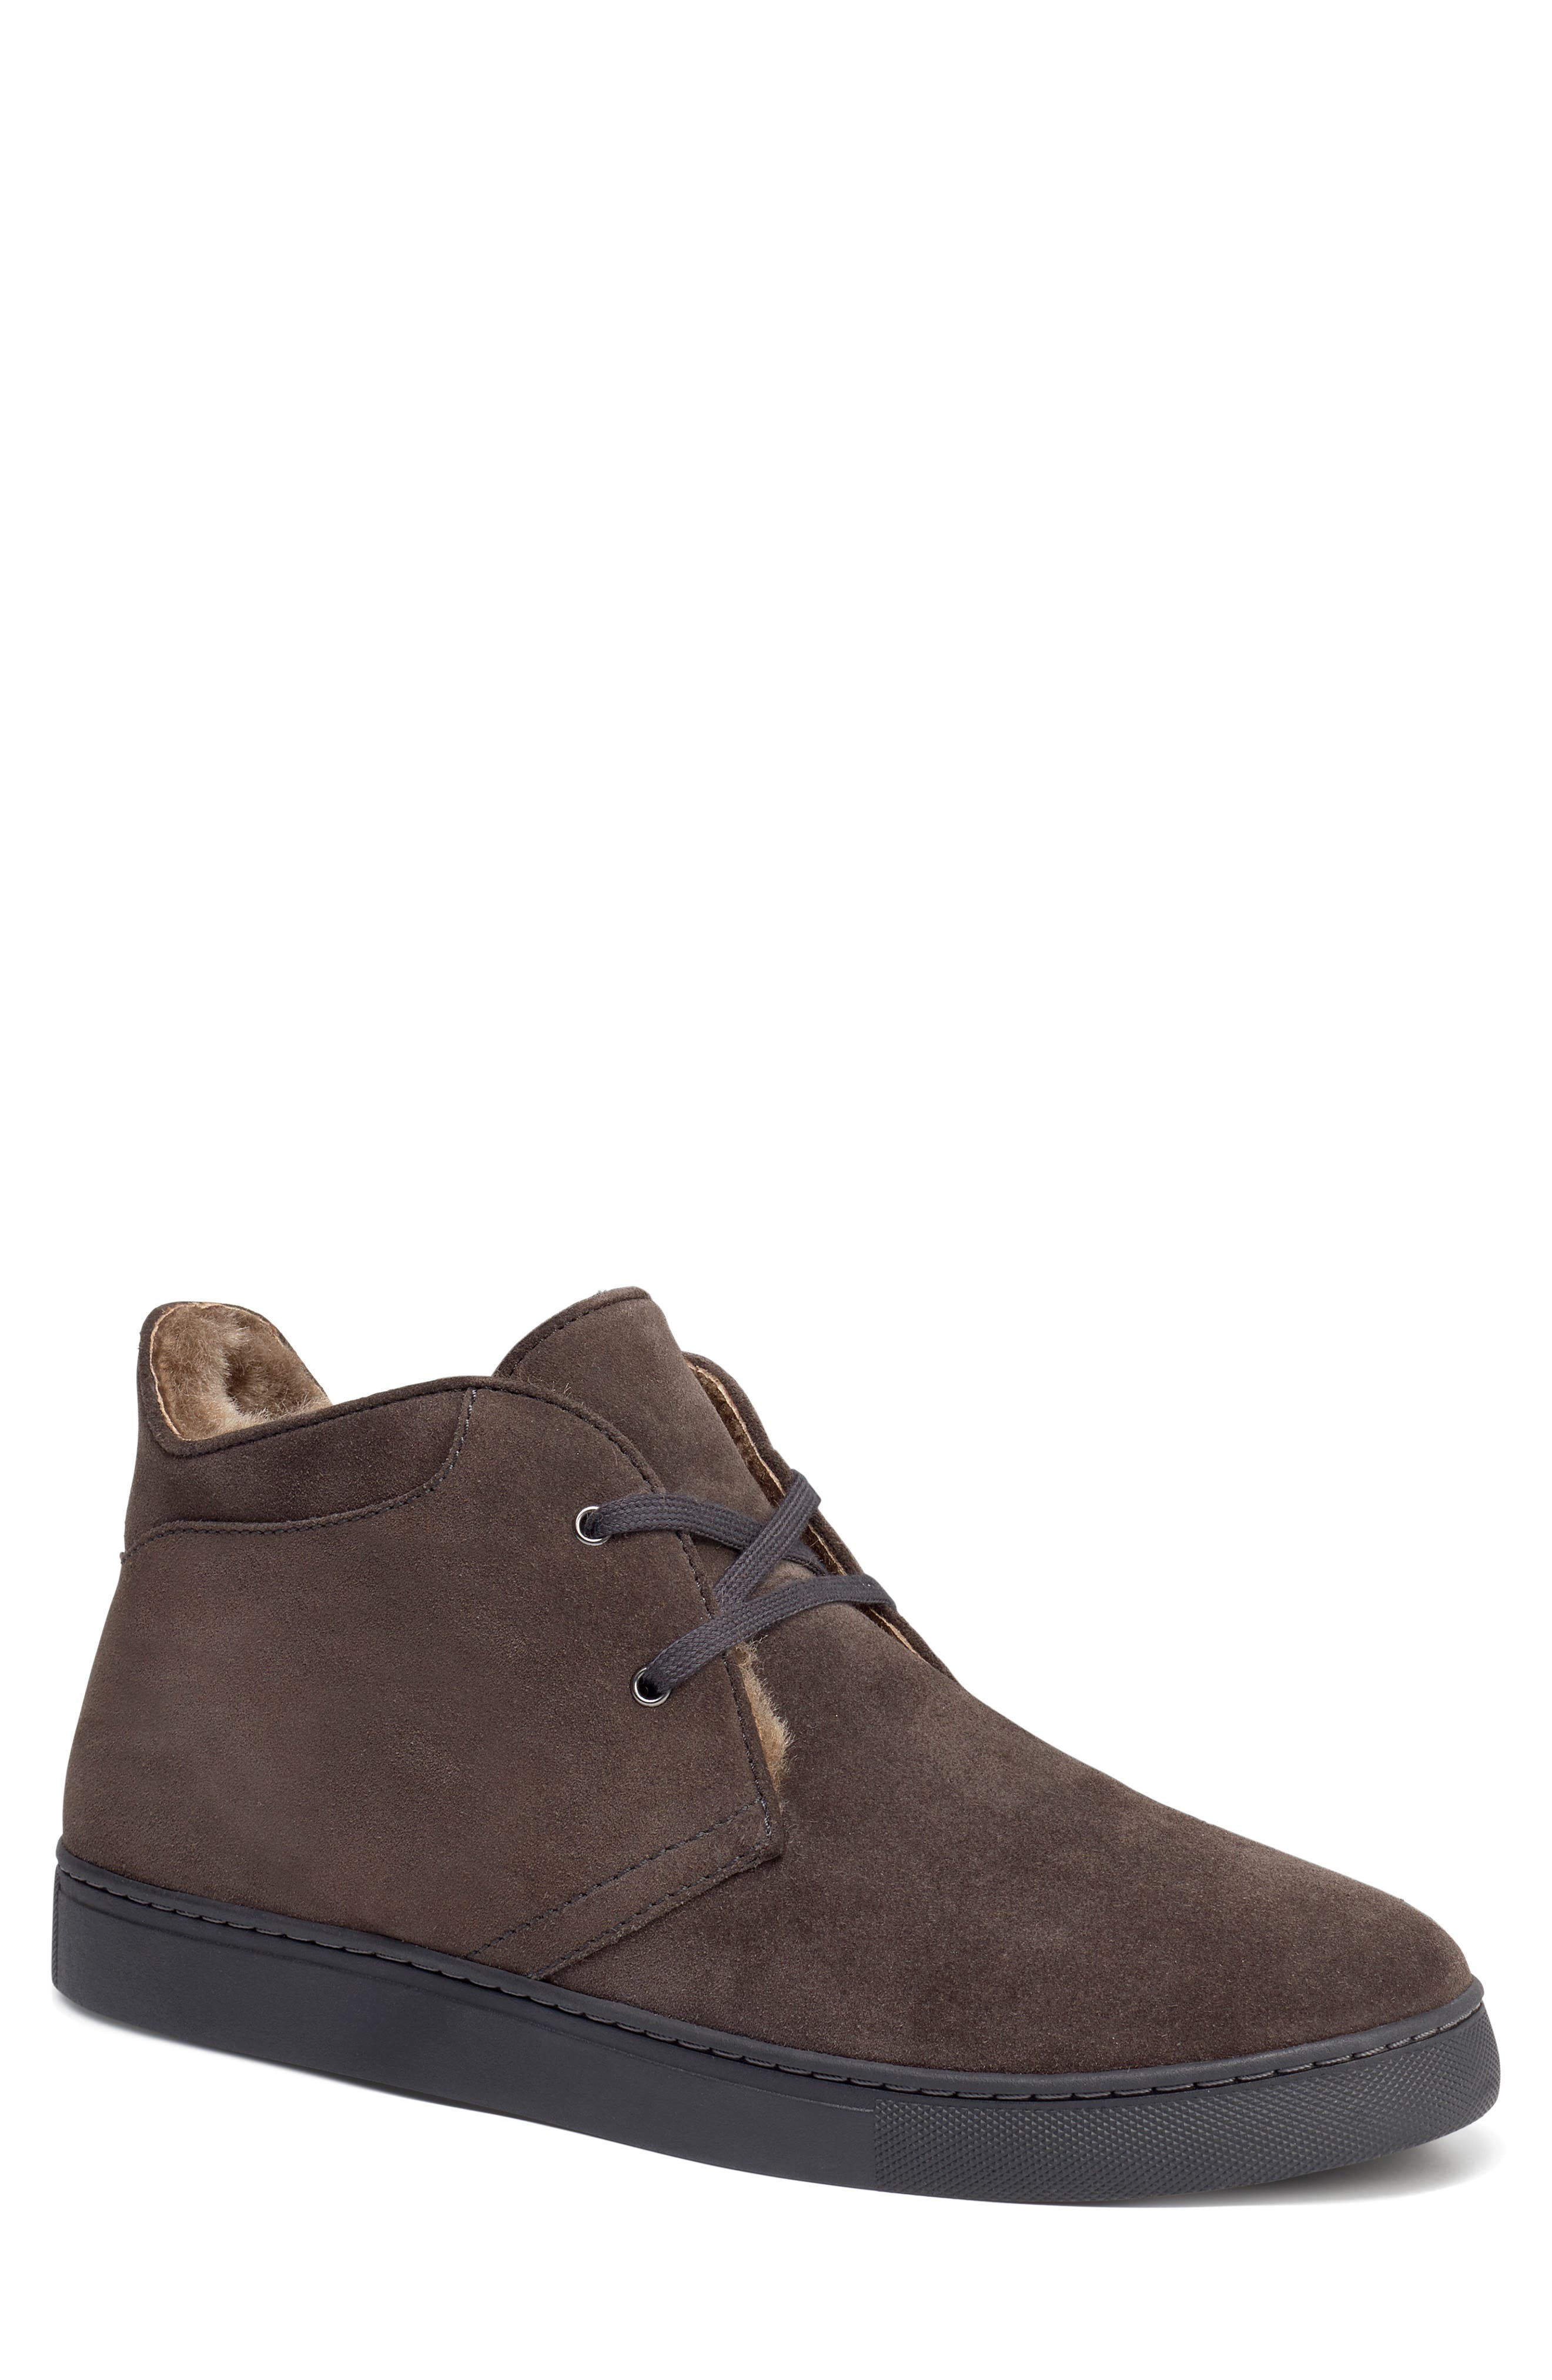 Ariston Genuine Shearling Chukka Boot,                             Main thumbnail 1, color,                             CHARCOAL SUEDE